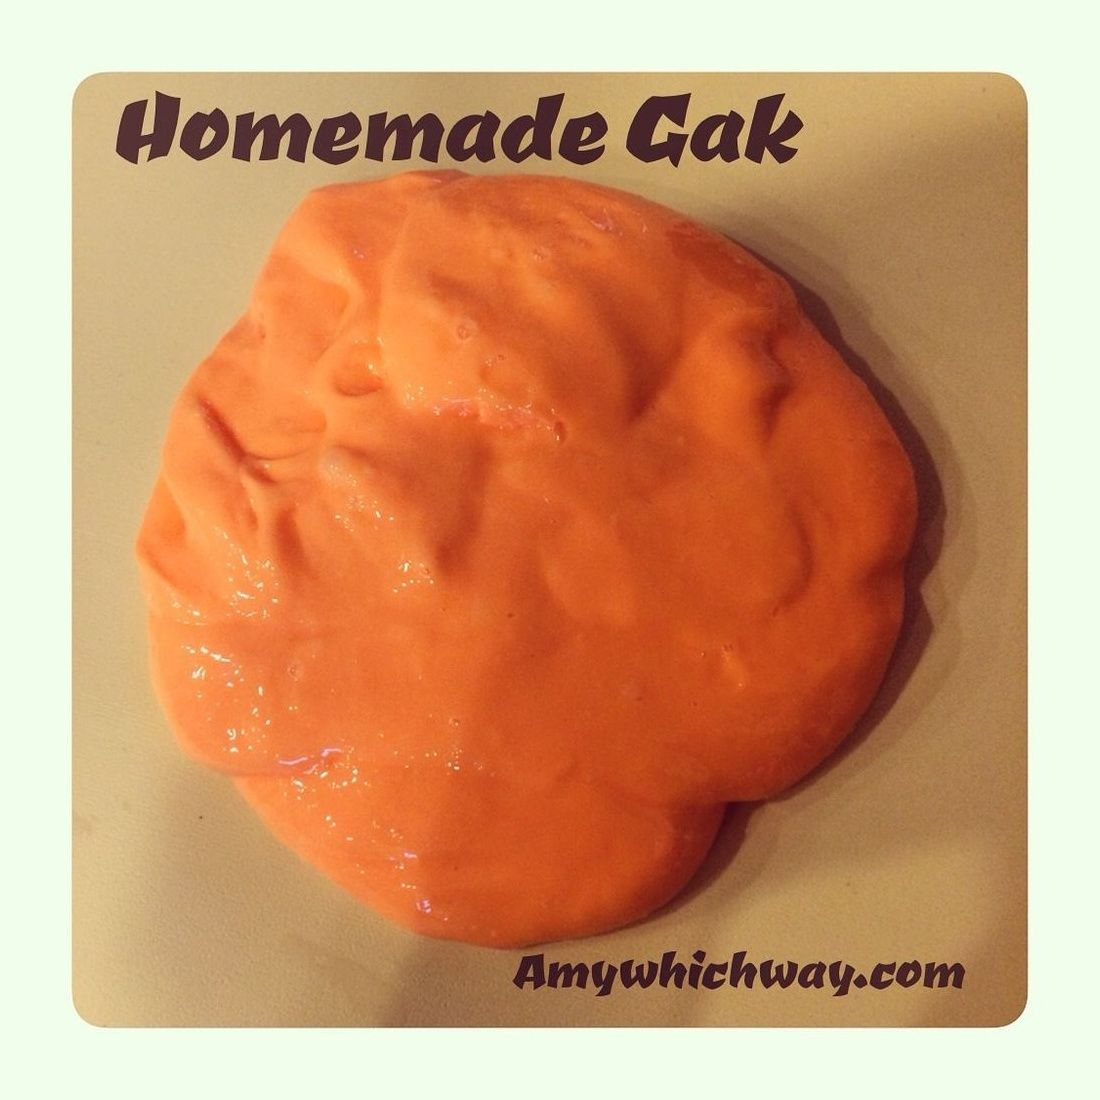 #Amy #Gak #homemade #which #winter break college home Homemade Gak — Amy Which Way Silly Putty meets Slime! A fun twist on playdough that kiddos of …